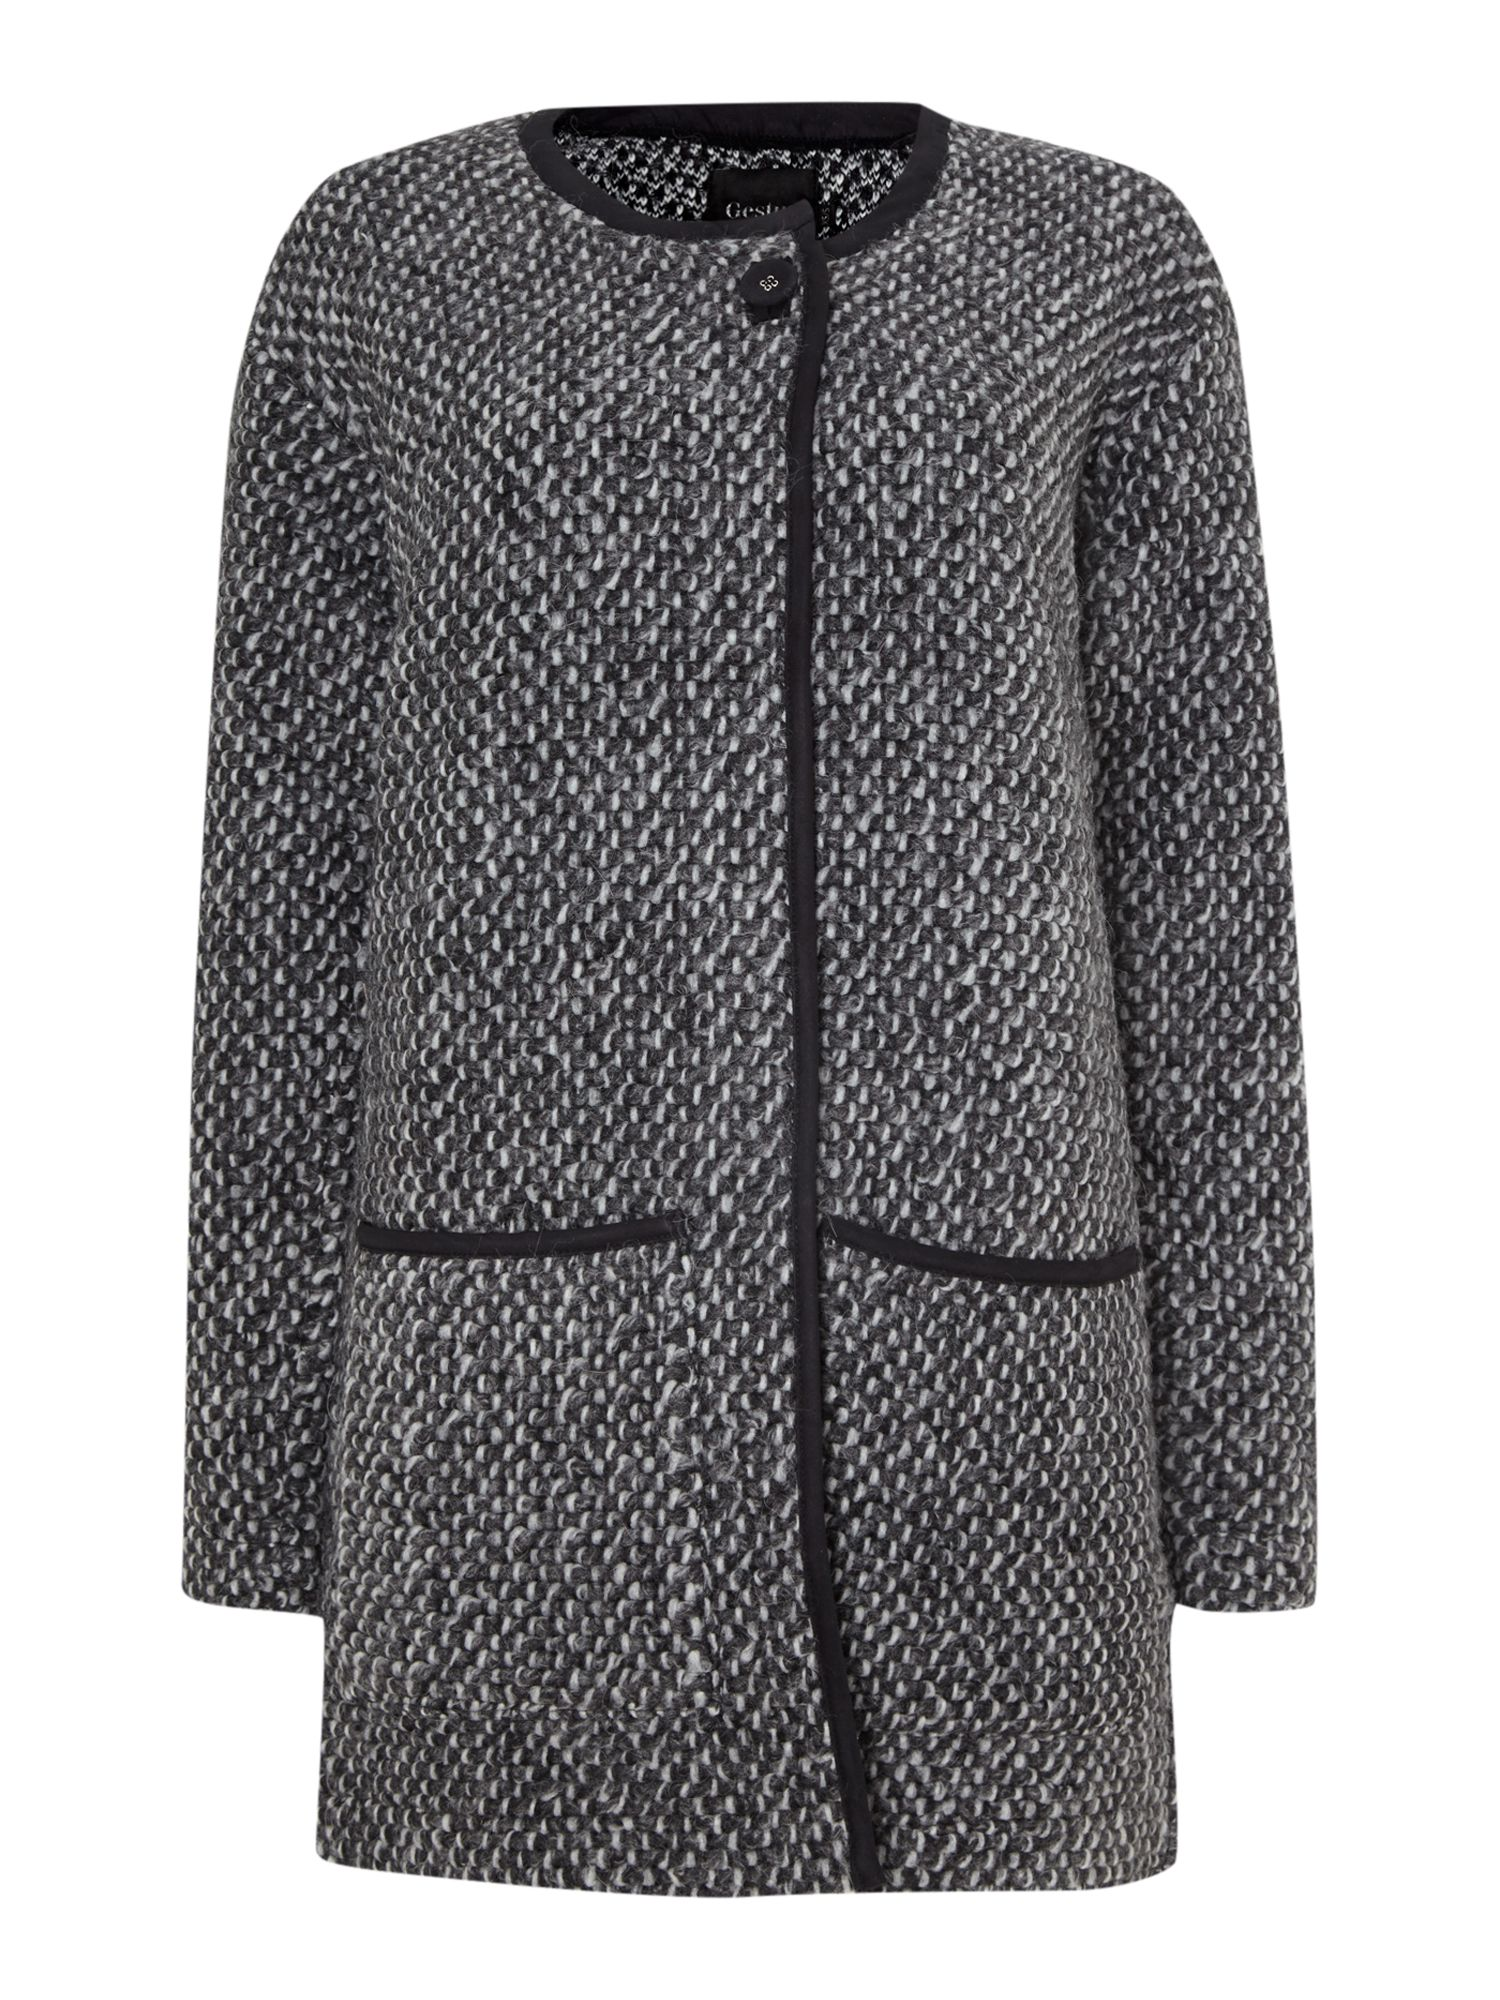 Wool cardigan jacket